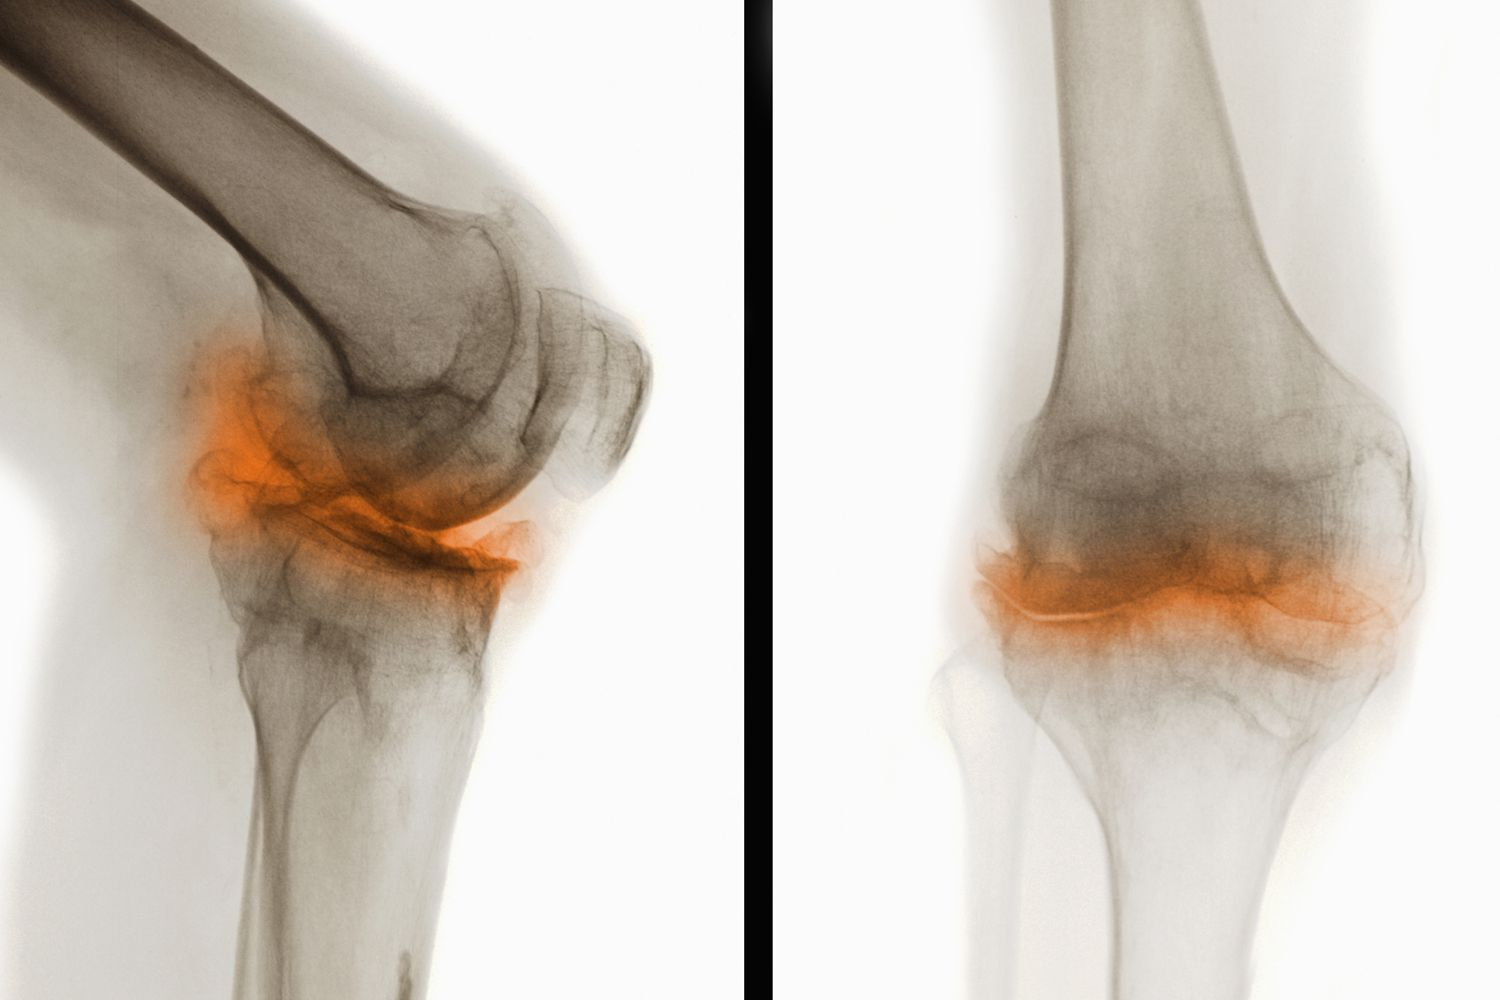 An X-ray showing osteoarthritis of the knee